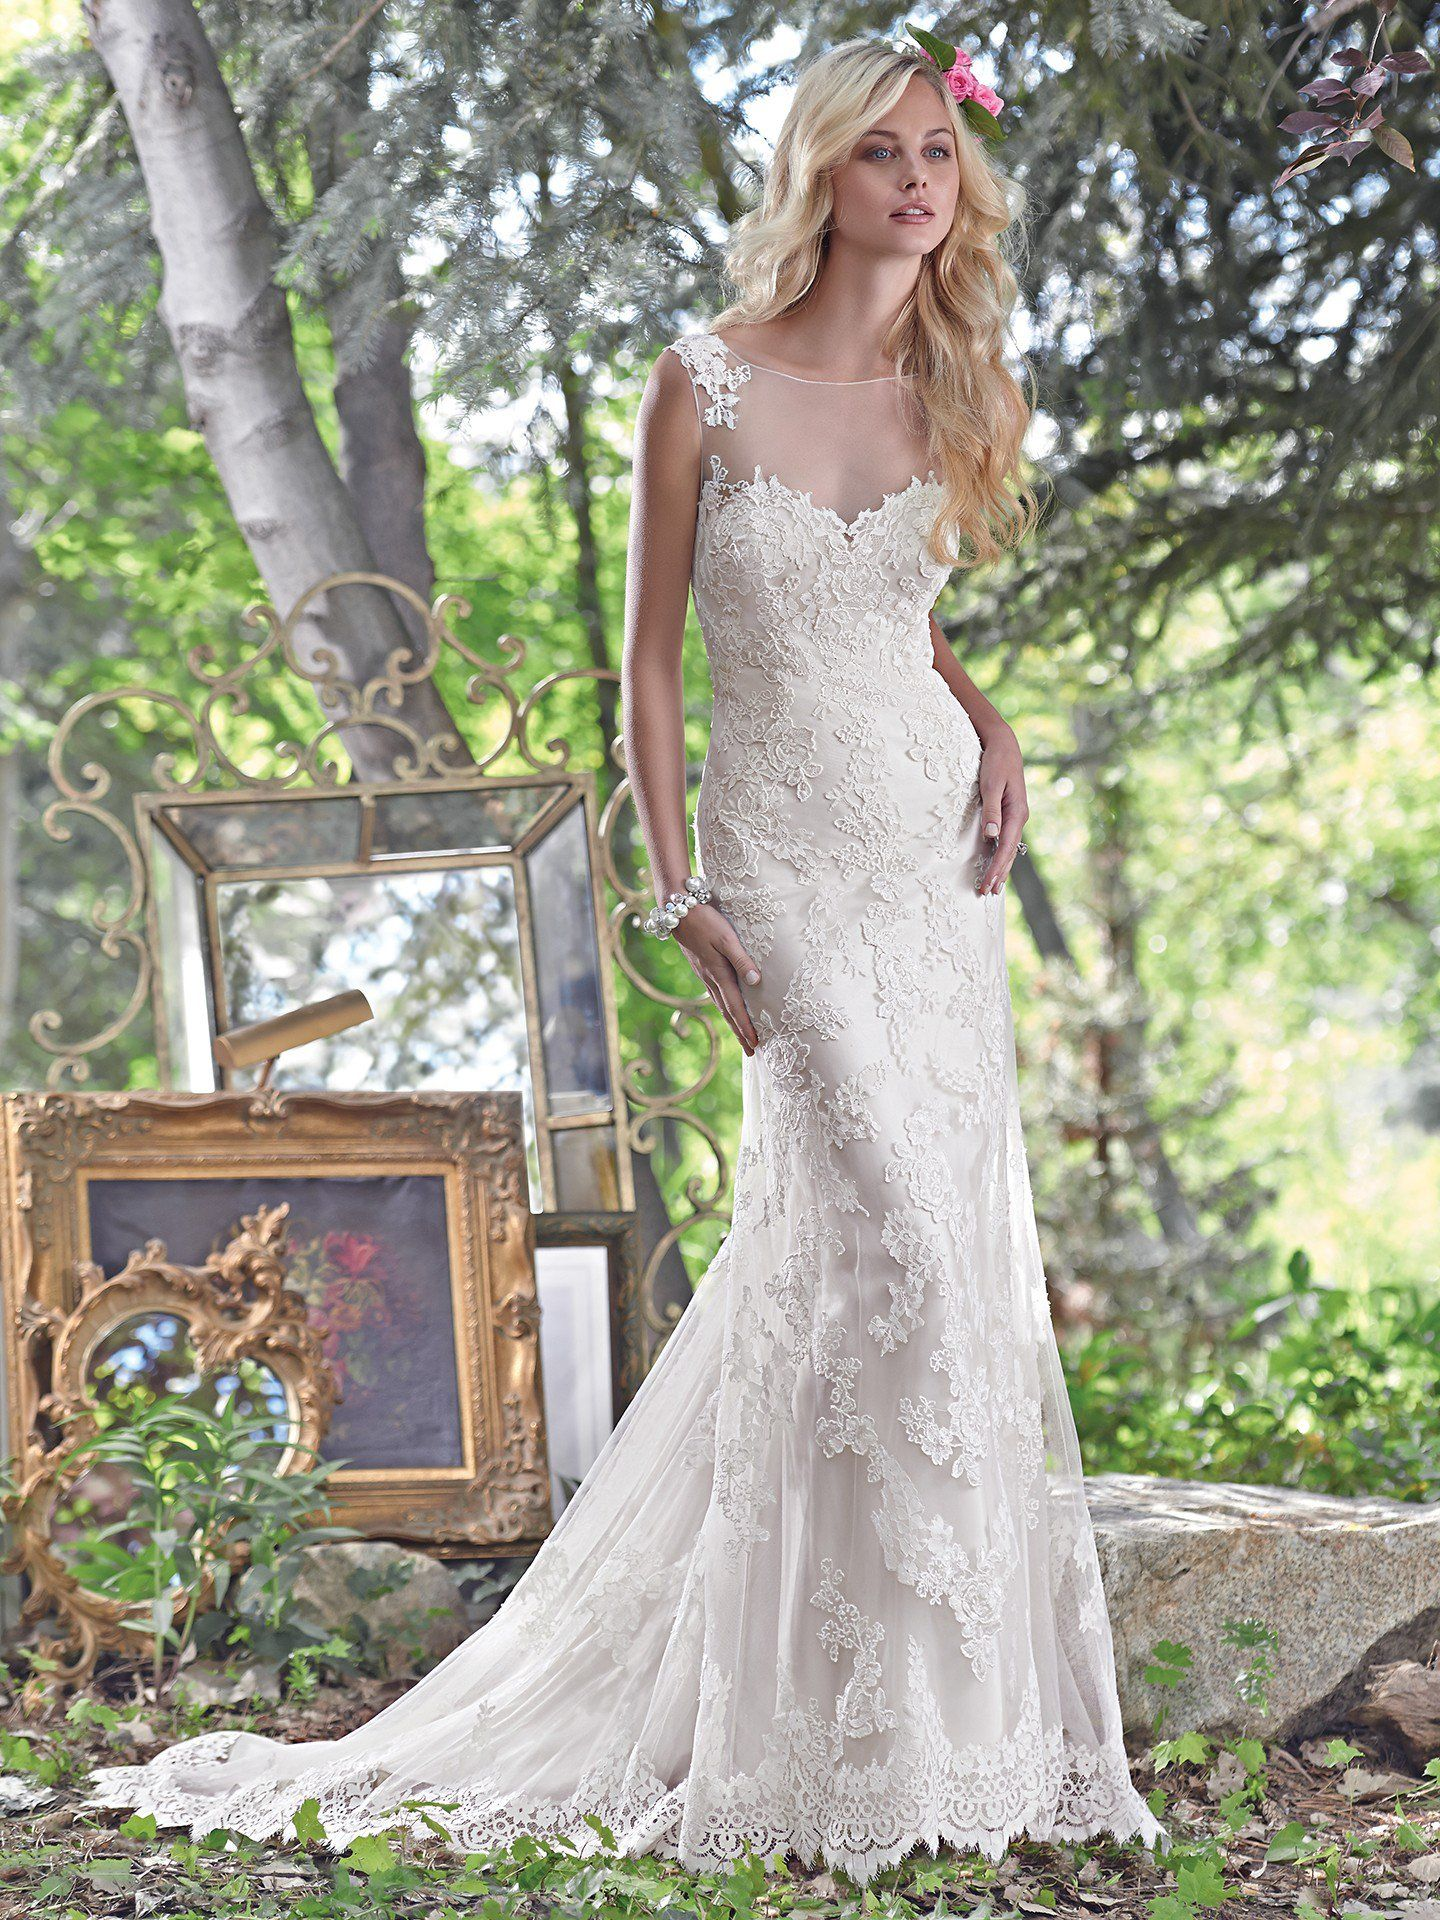 Jovi maggie sottero available at luluus bridal boutique dallas